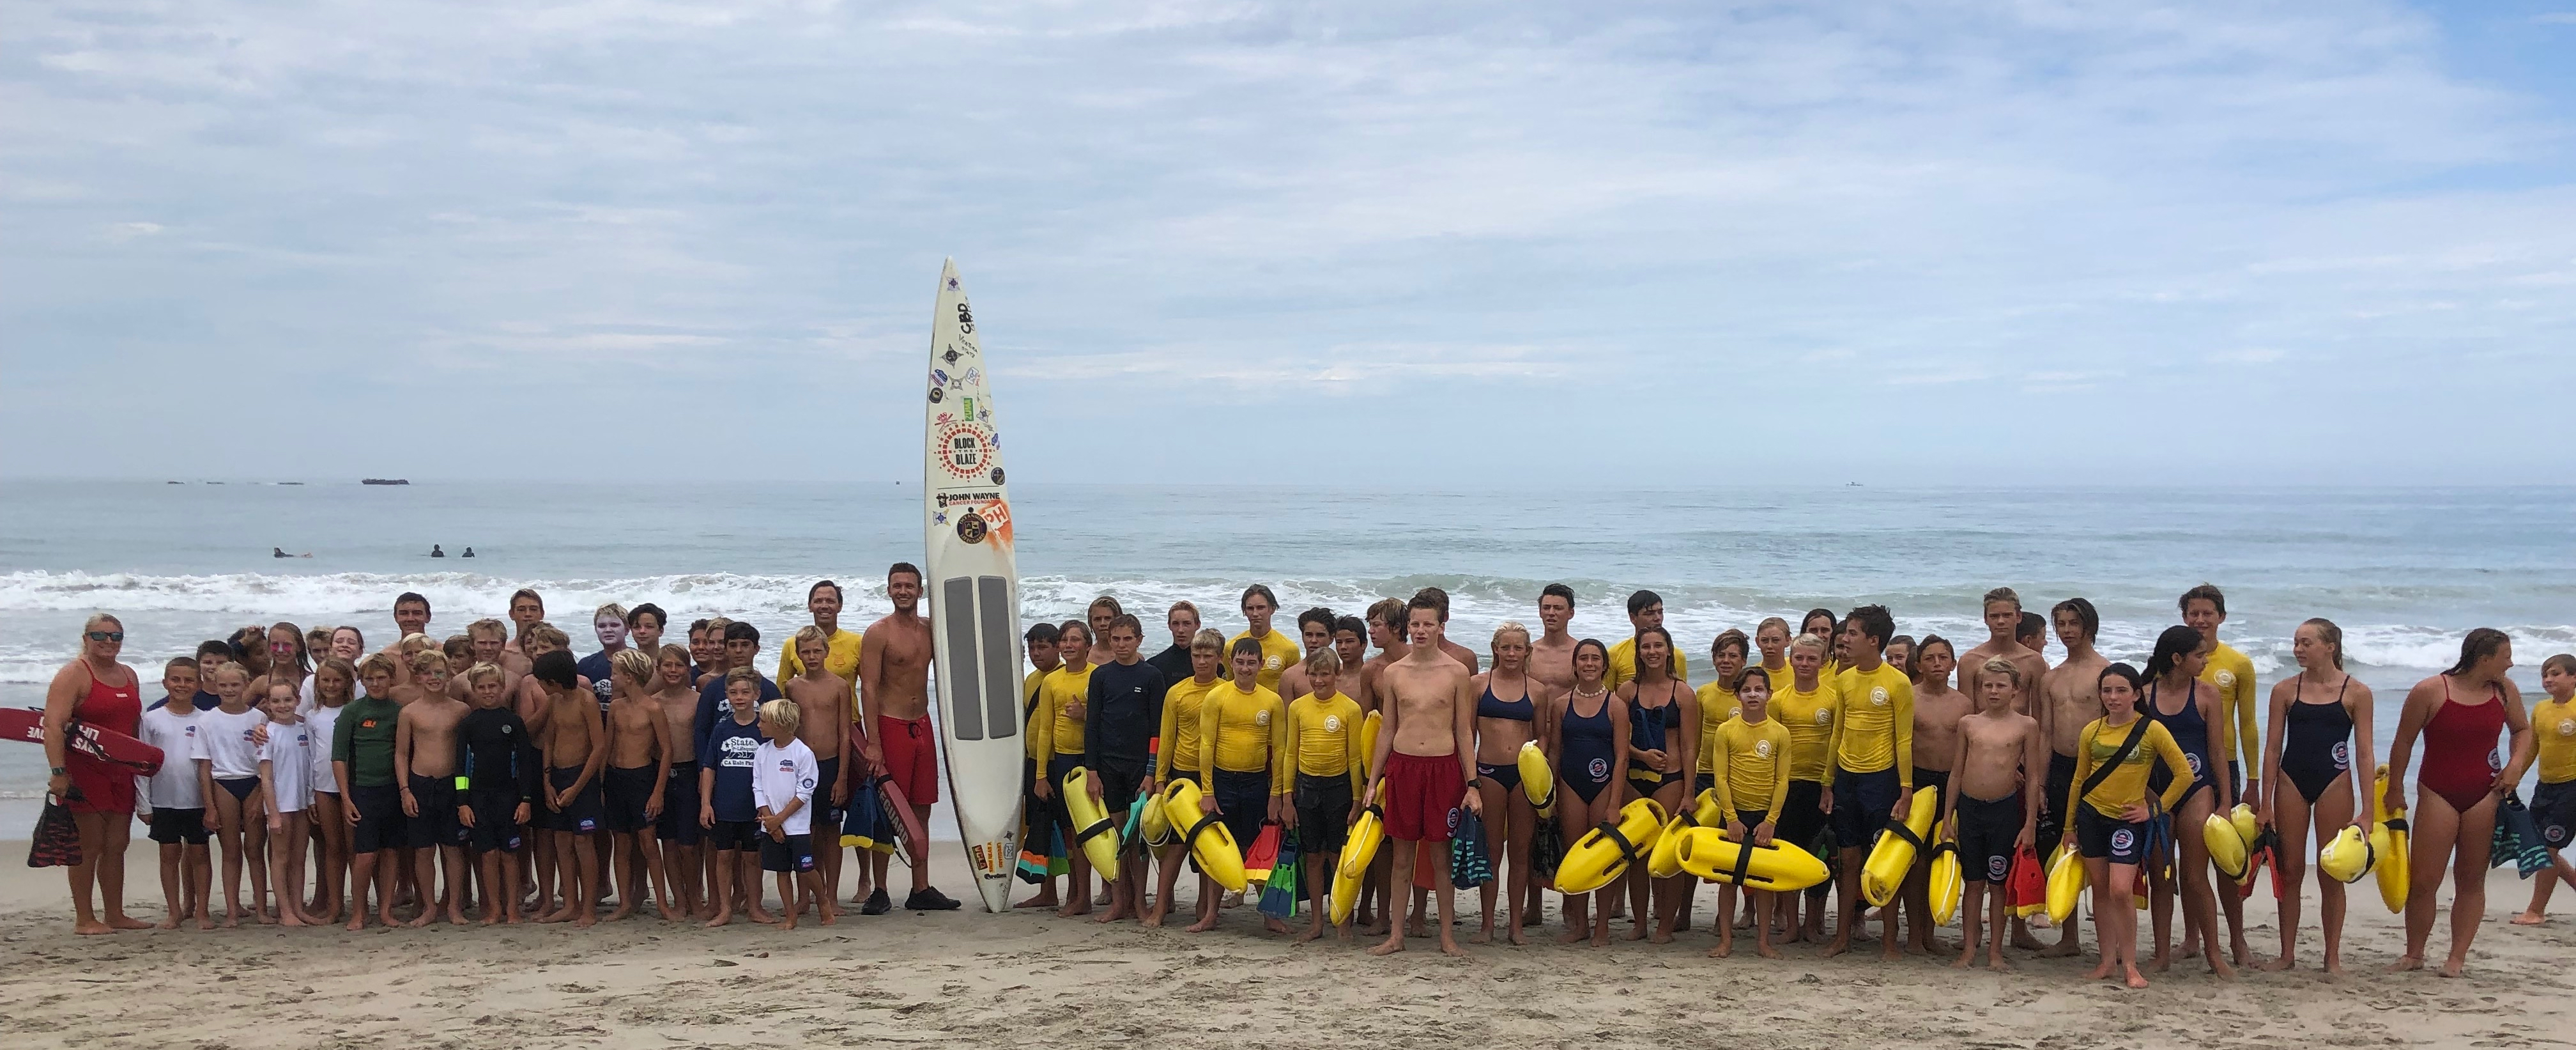 San Clemente Lifeguards and Junior Lifeguards took part in an ocean paddle on Thursday, July 25 as part of the SoCal PaddleDown For Cancer Relay, which promotes sun safety and skin cancer awareness among lifeguard agencies along the California coast. Photo credit CSLSA